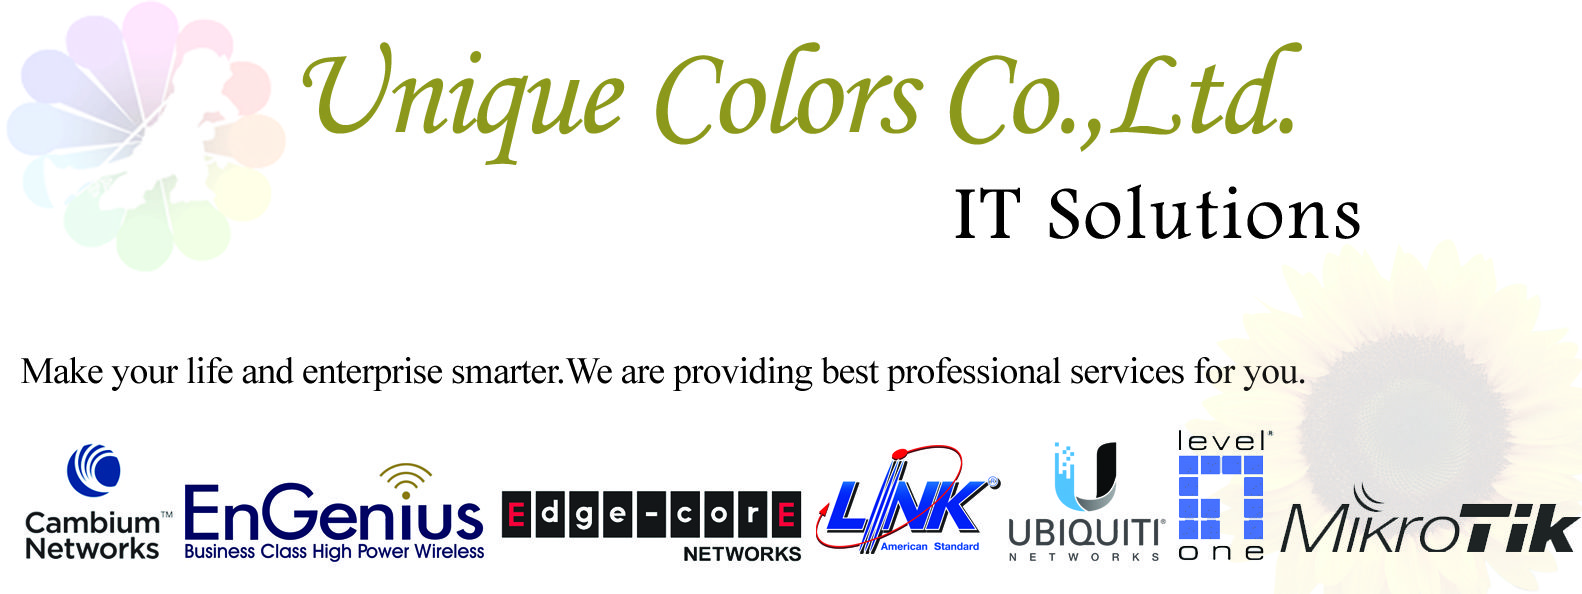 Unique Colors Co., Ltd.